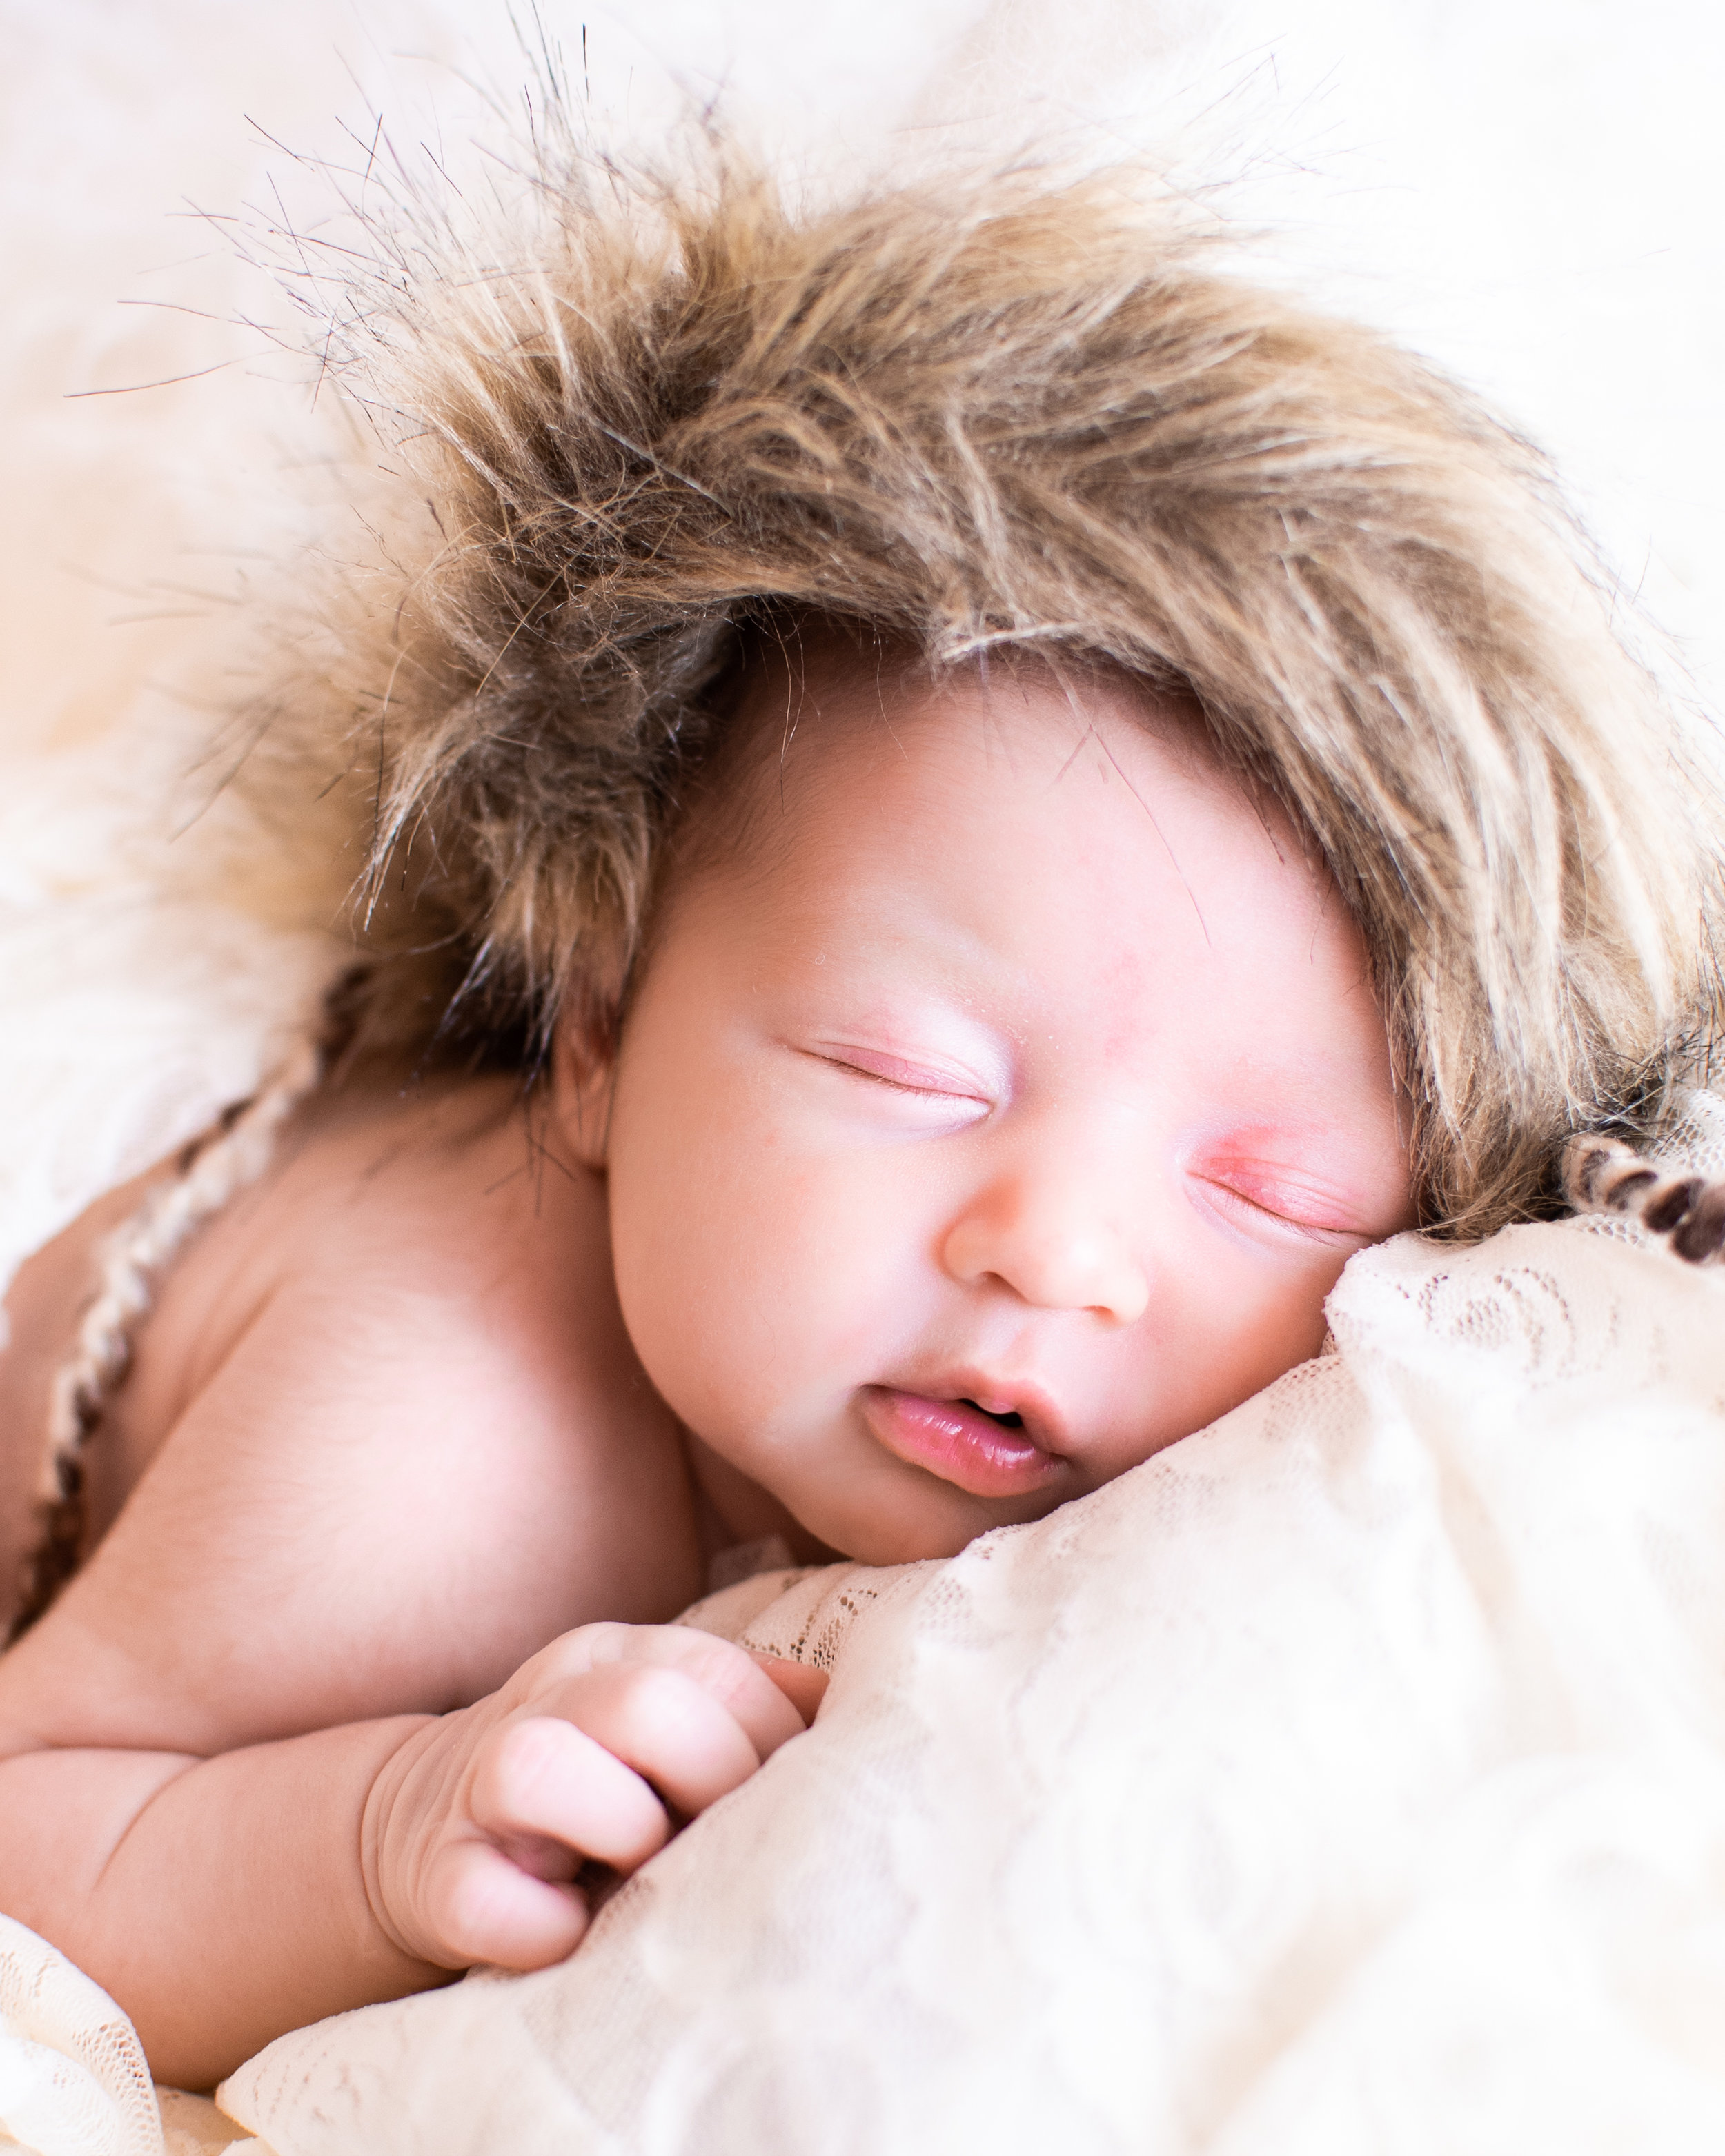 Kyla Jo Photography // Muncie, Indiana // Newborn Photos // Newborn Session // Muncie indiana newborn session // Newborn photographer muncie indiana // indiana newborn photographer // Eskimo Hat Newborn Photos